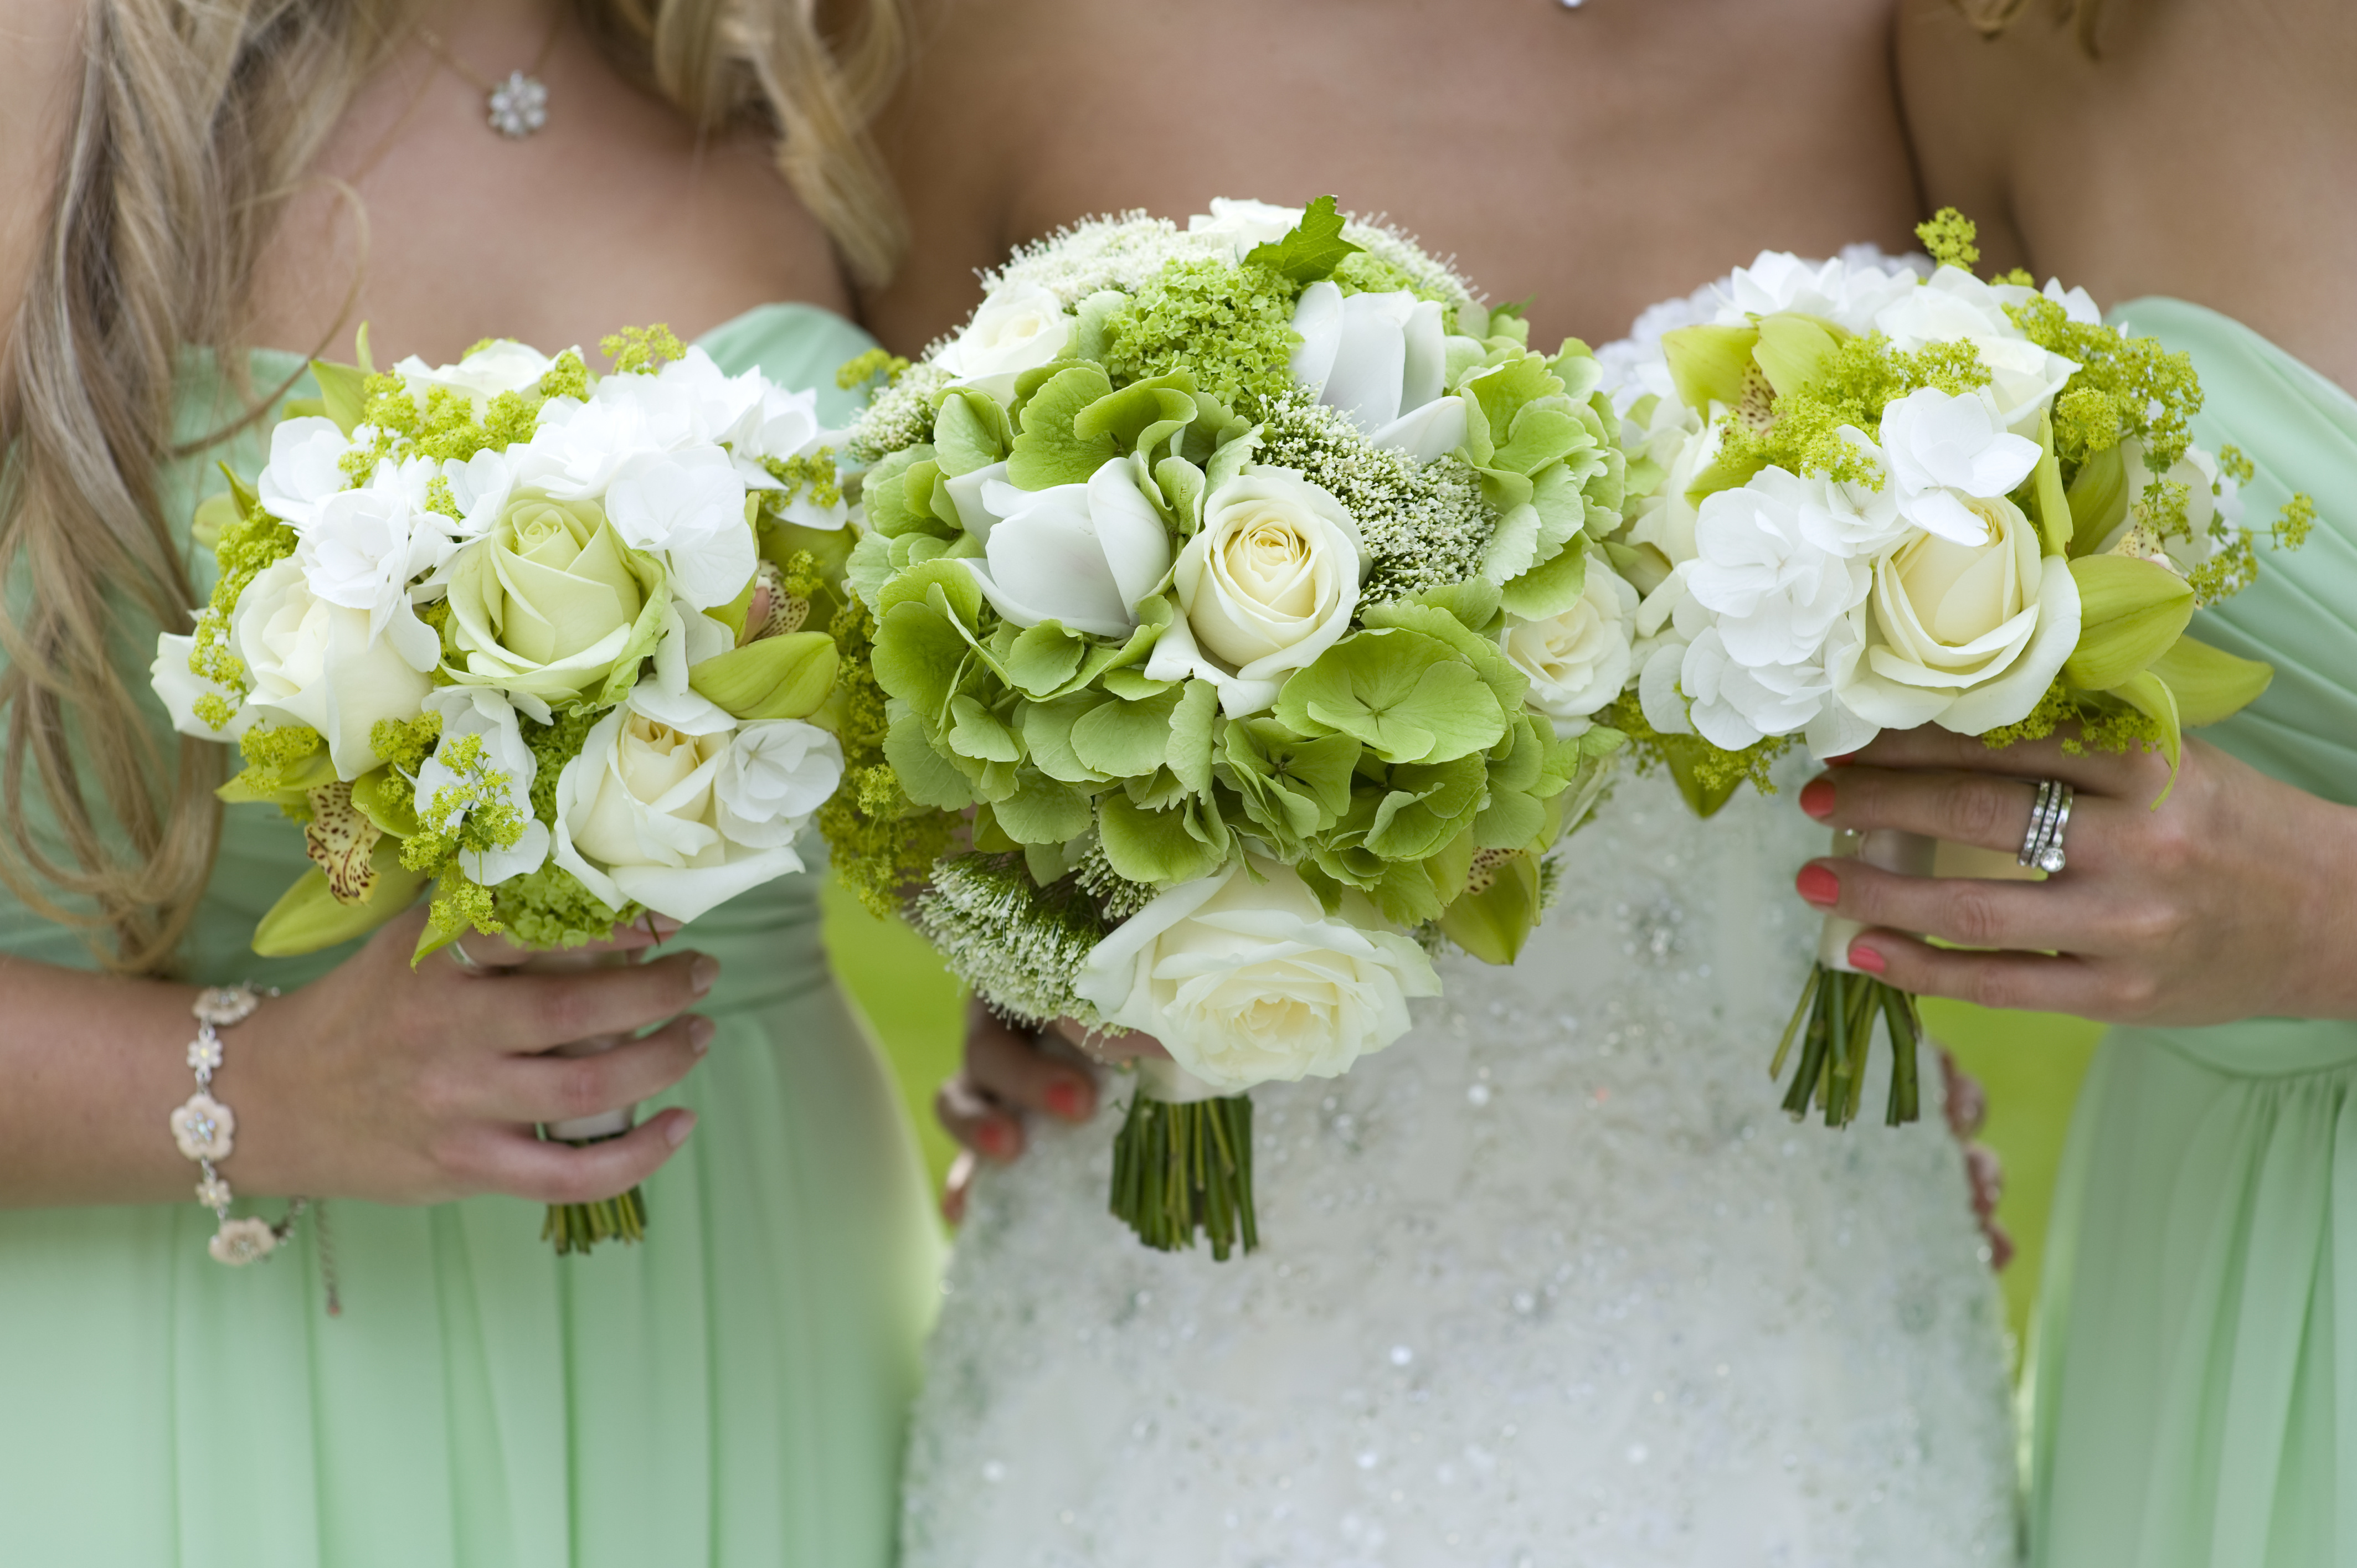 Garlic And Sage The Origins Of The Modern Bridal Bouquet Blooms